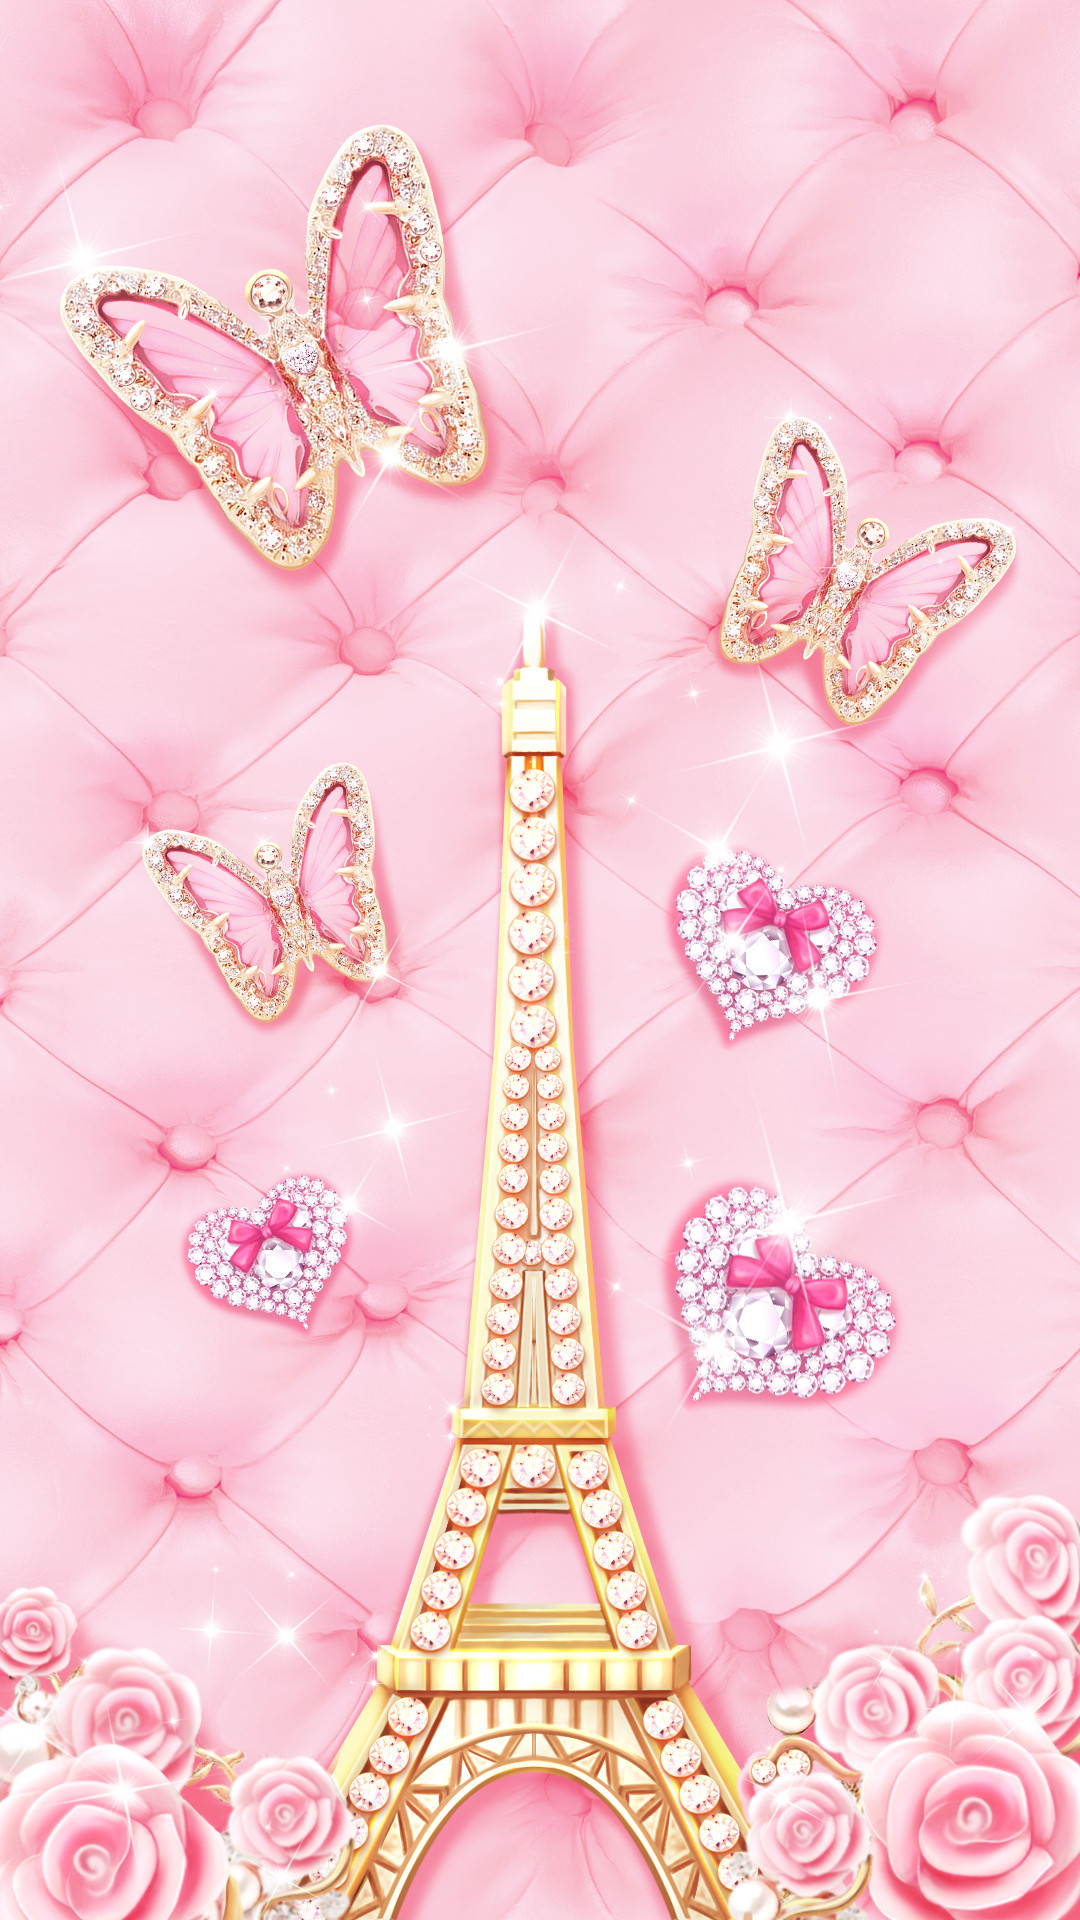 Cute Pink Wallpapers for iPhone (83+ images)